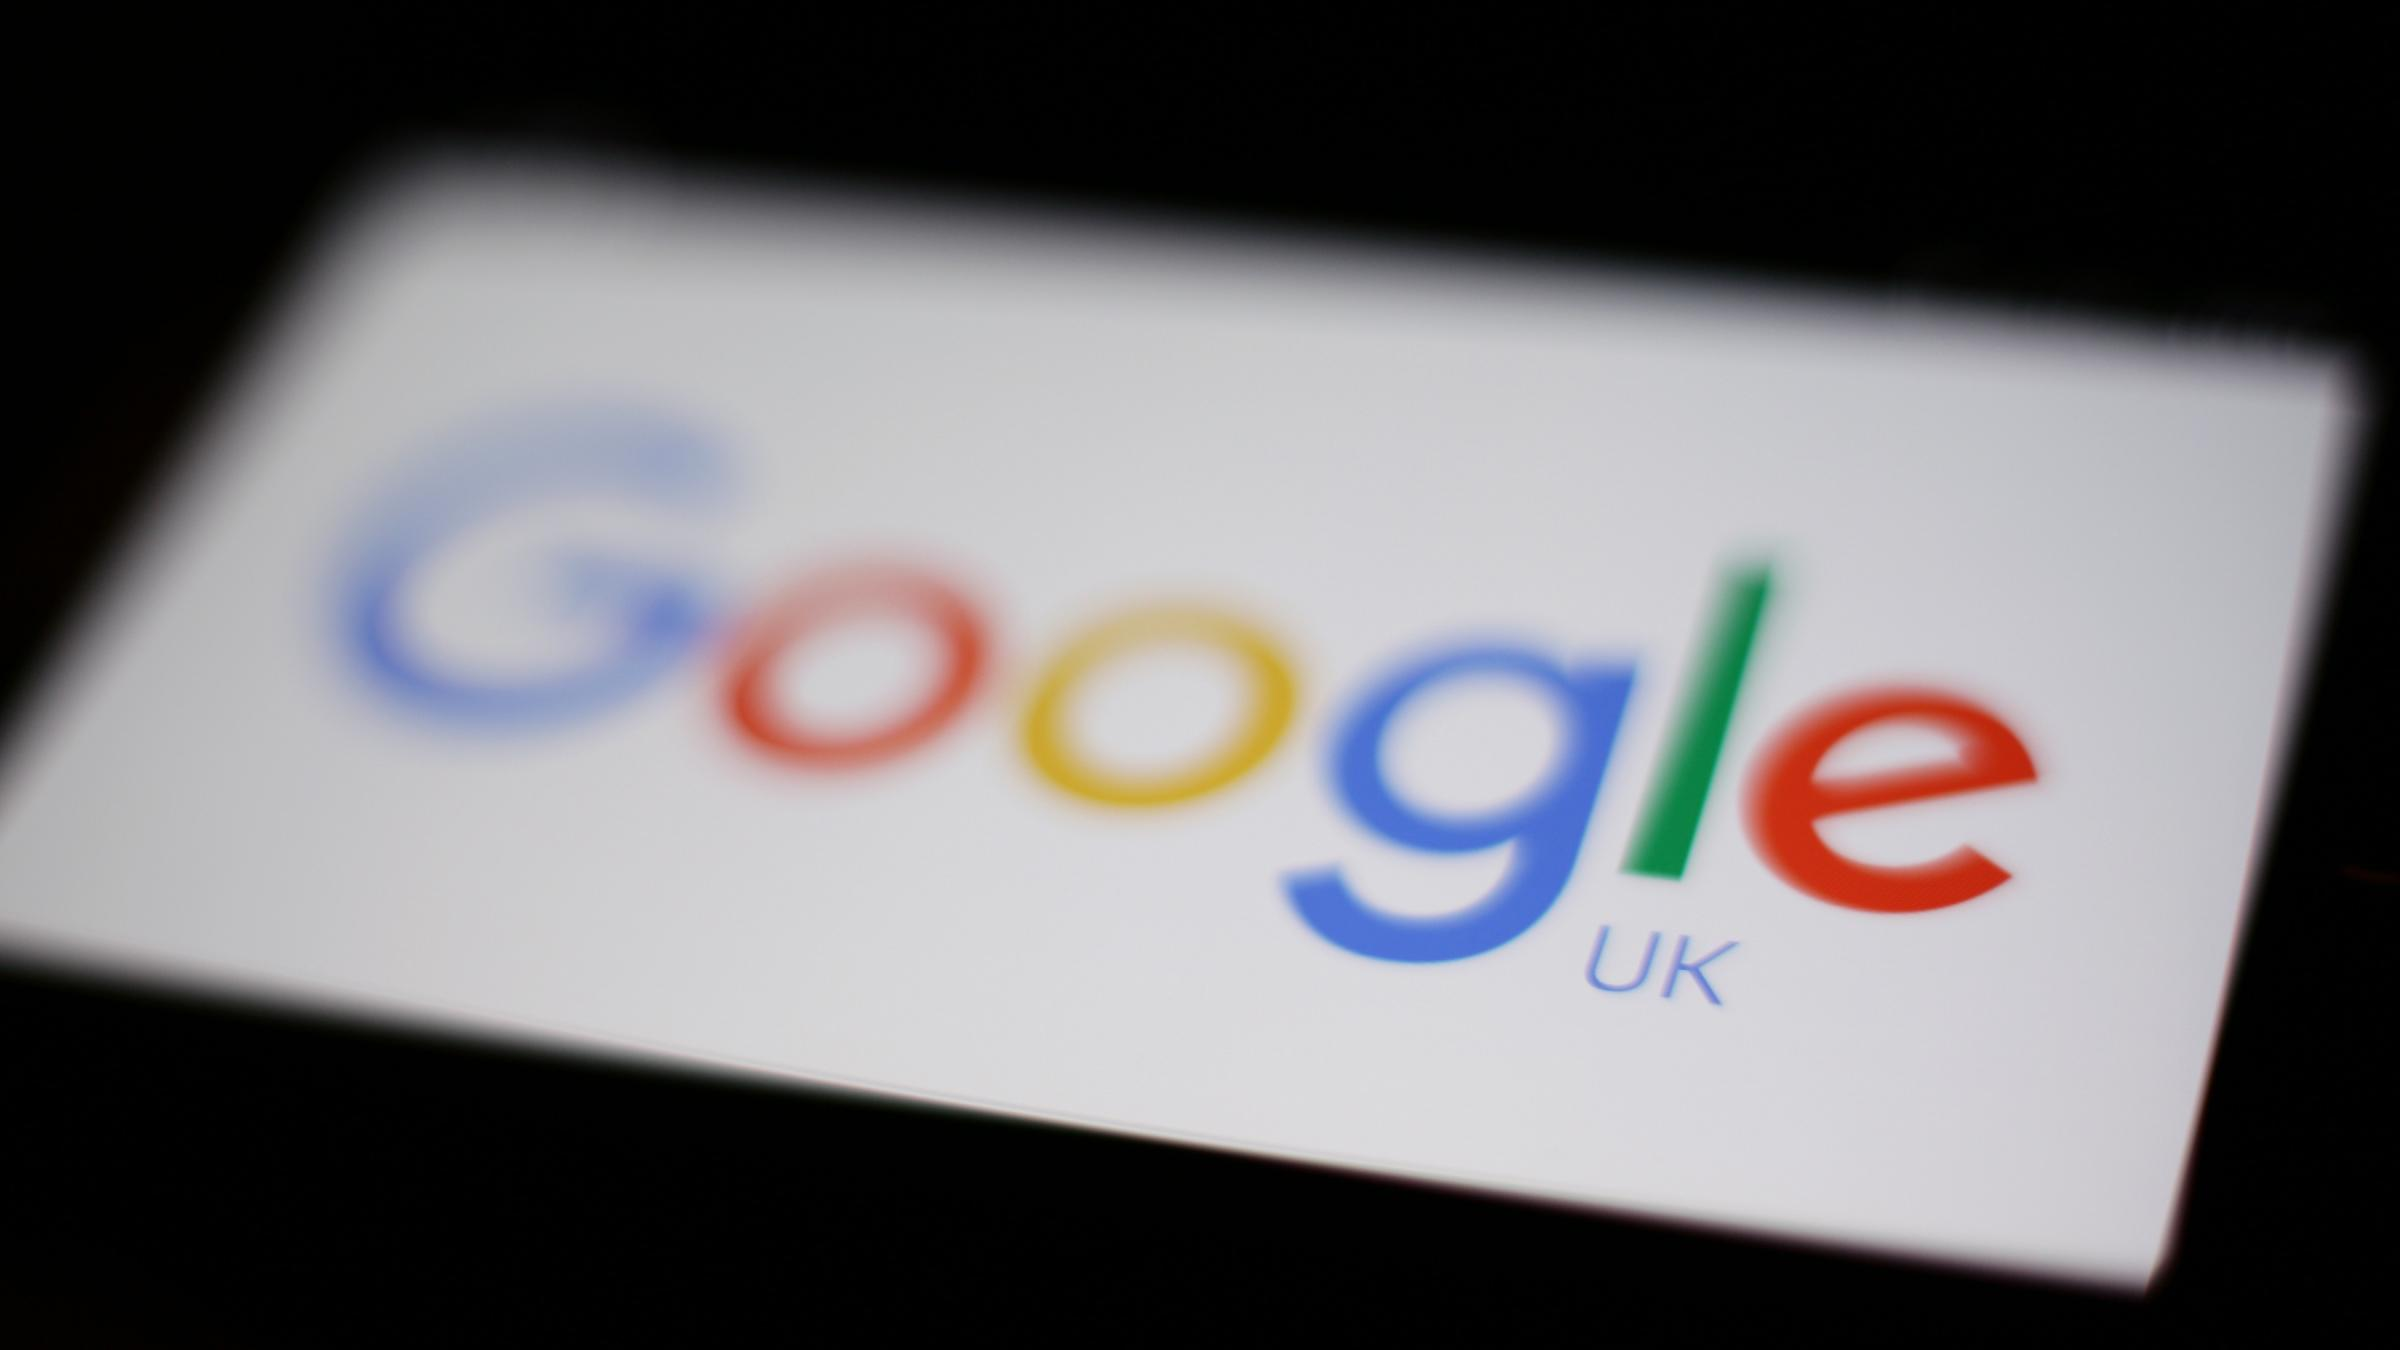 How to fight terrorism, according to Google's four-point plan